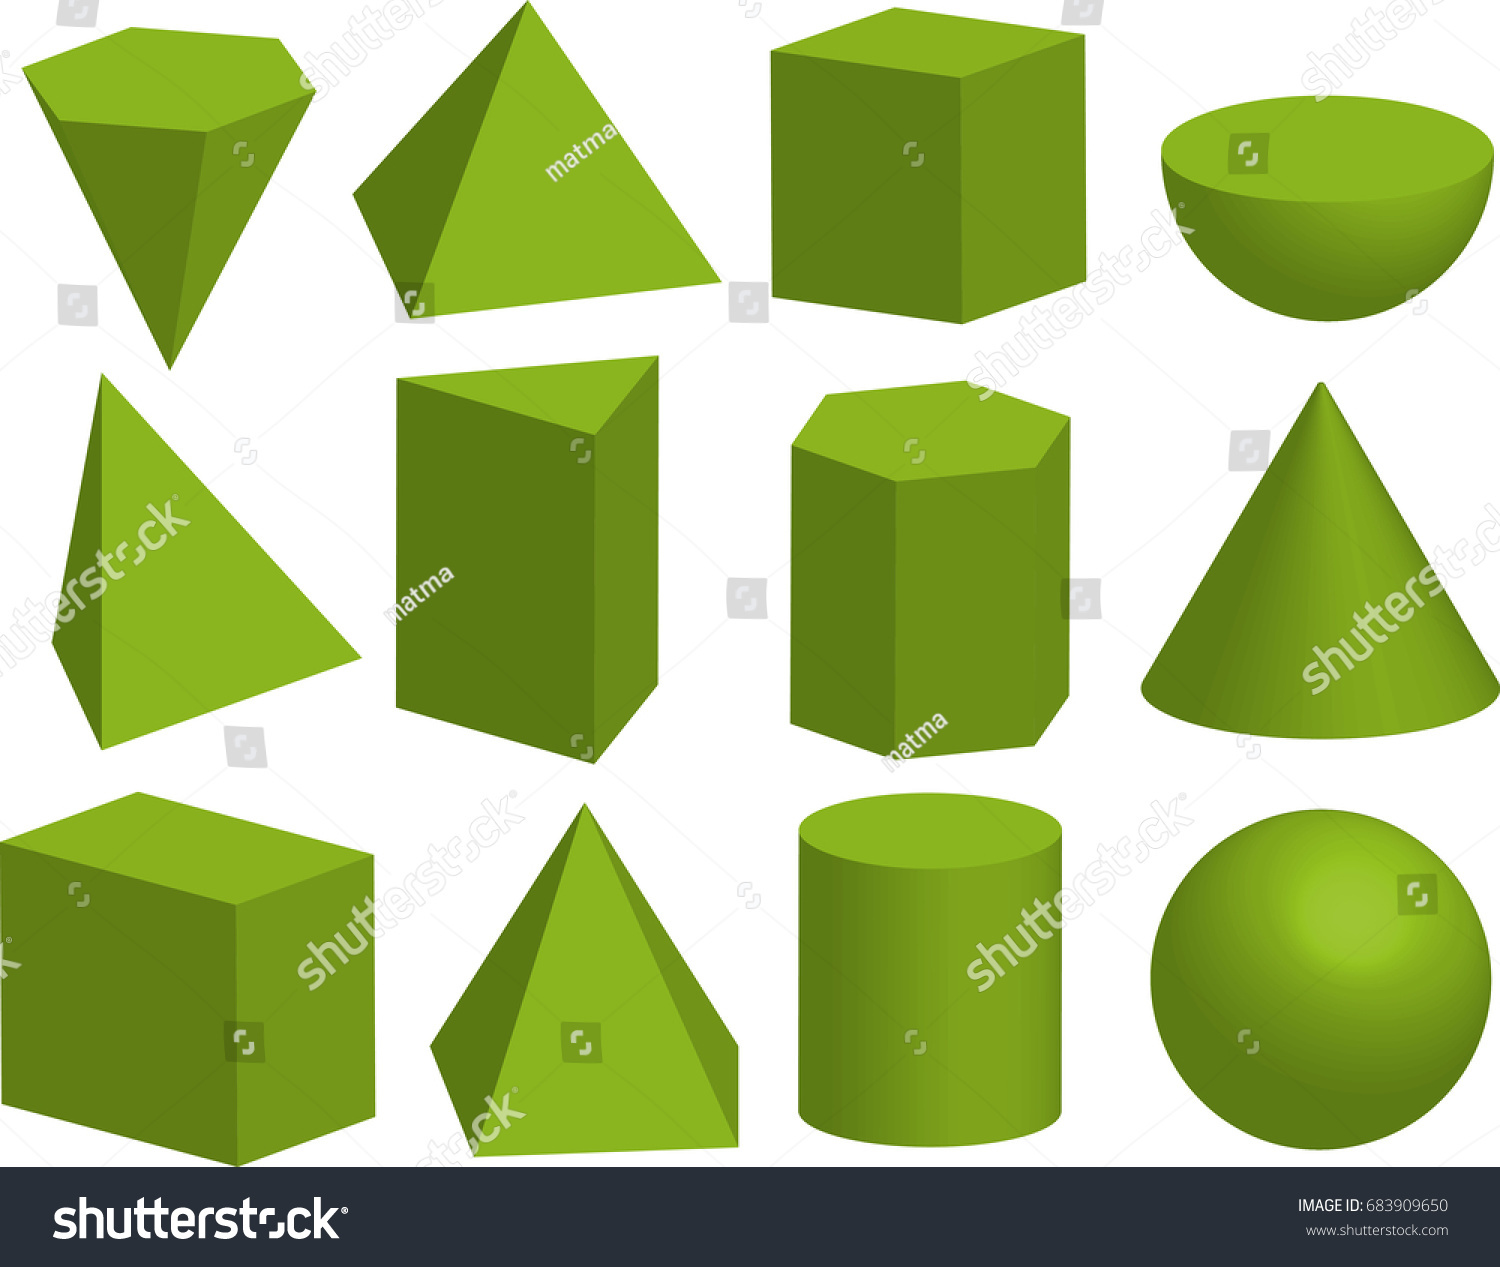 Basic 3d Geometric Shapes Geometric Solids Stock Vector